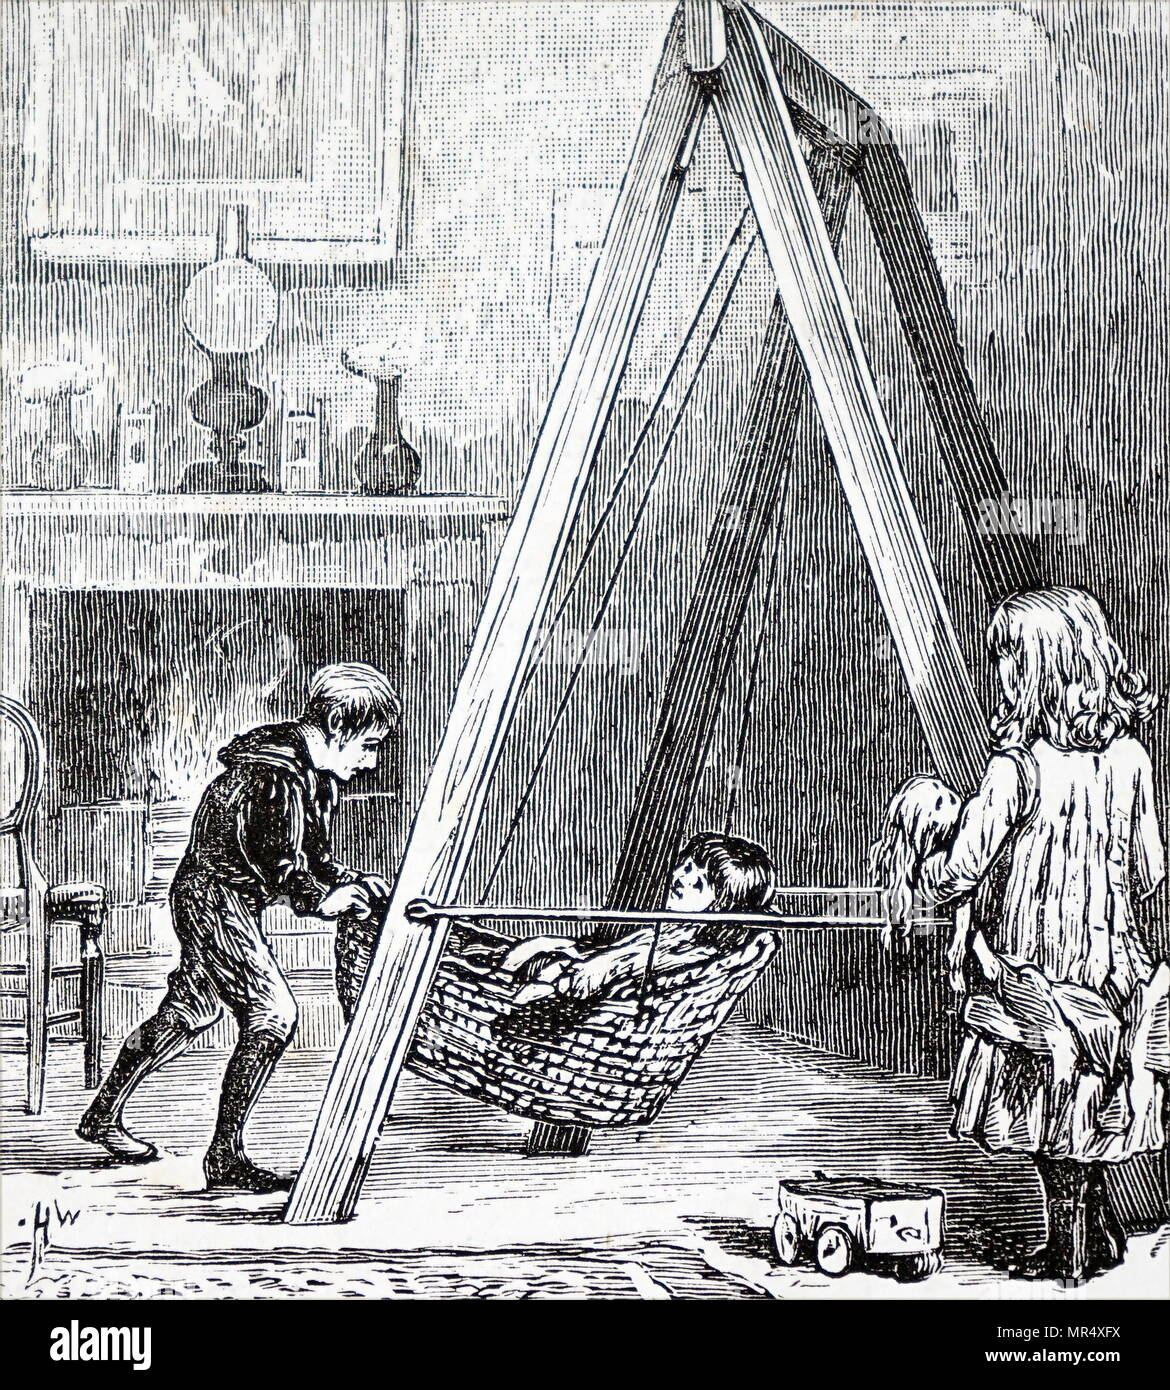 Illustration depicting a children's indoor swing, located inside the nursery of a wealthy home. Dated 19th century - Stock Image